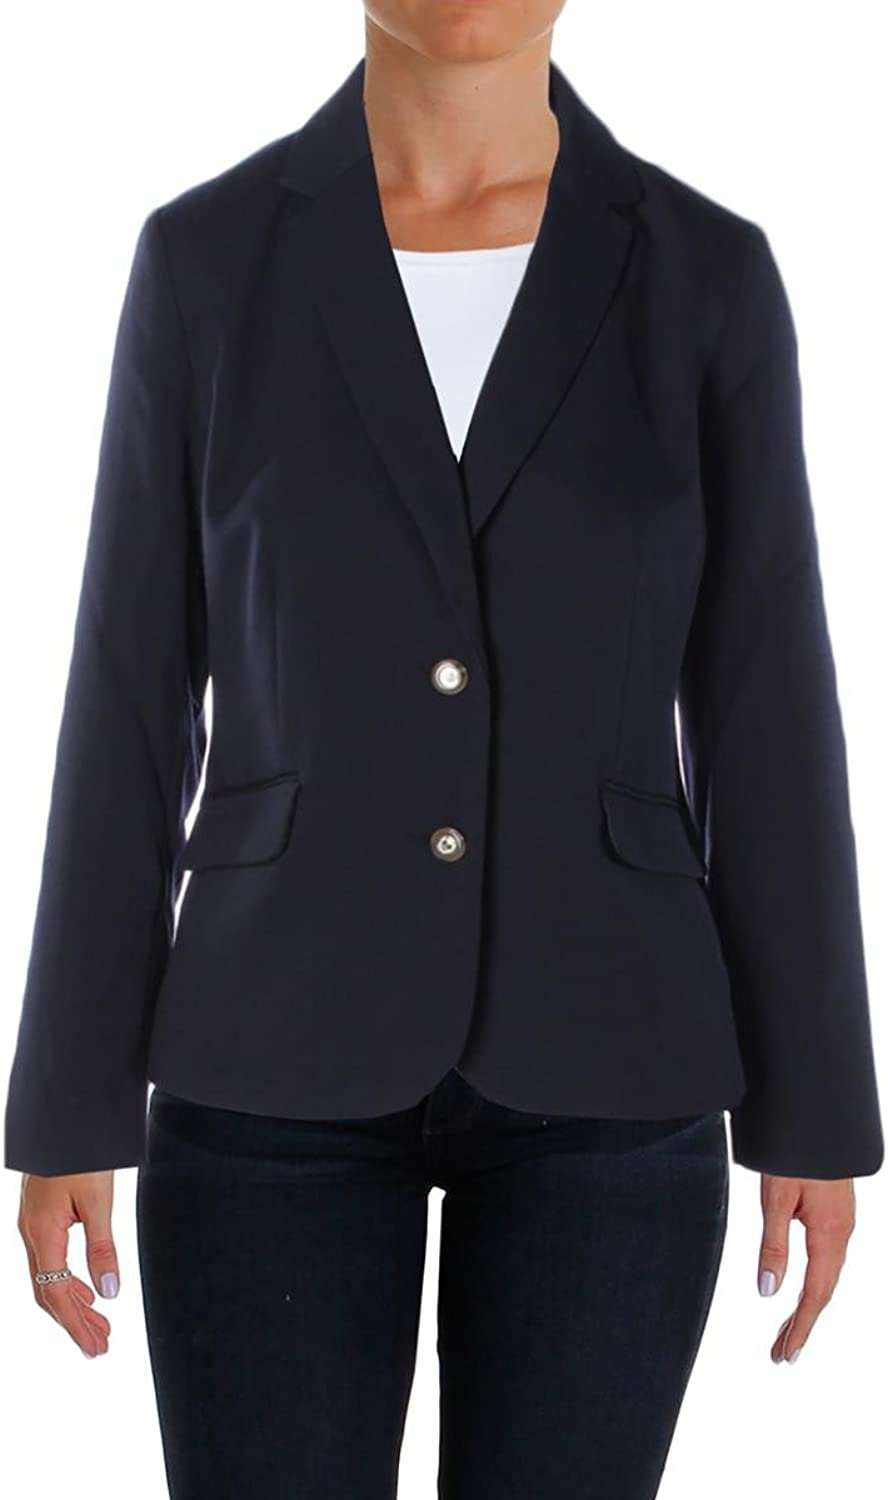 Charter Club Womens Solid Long Sleeves Jacket Navy 8